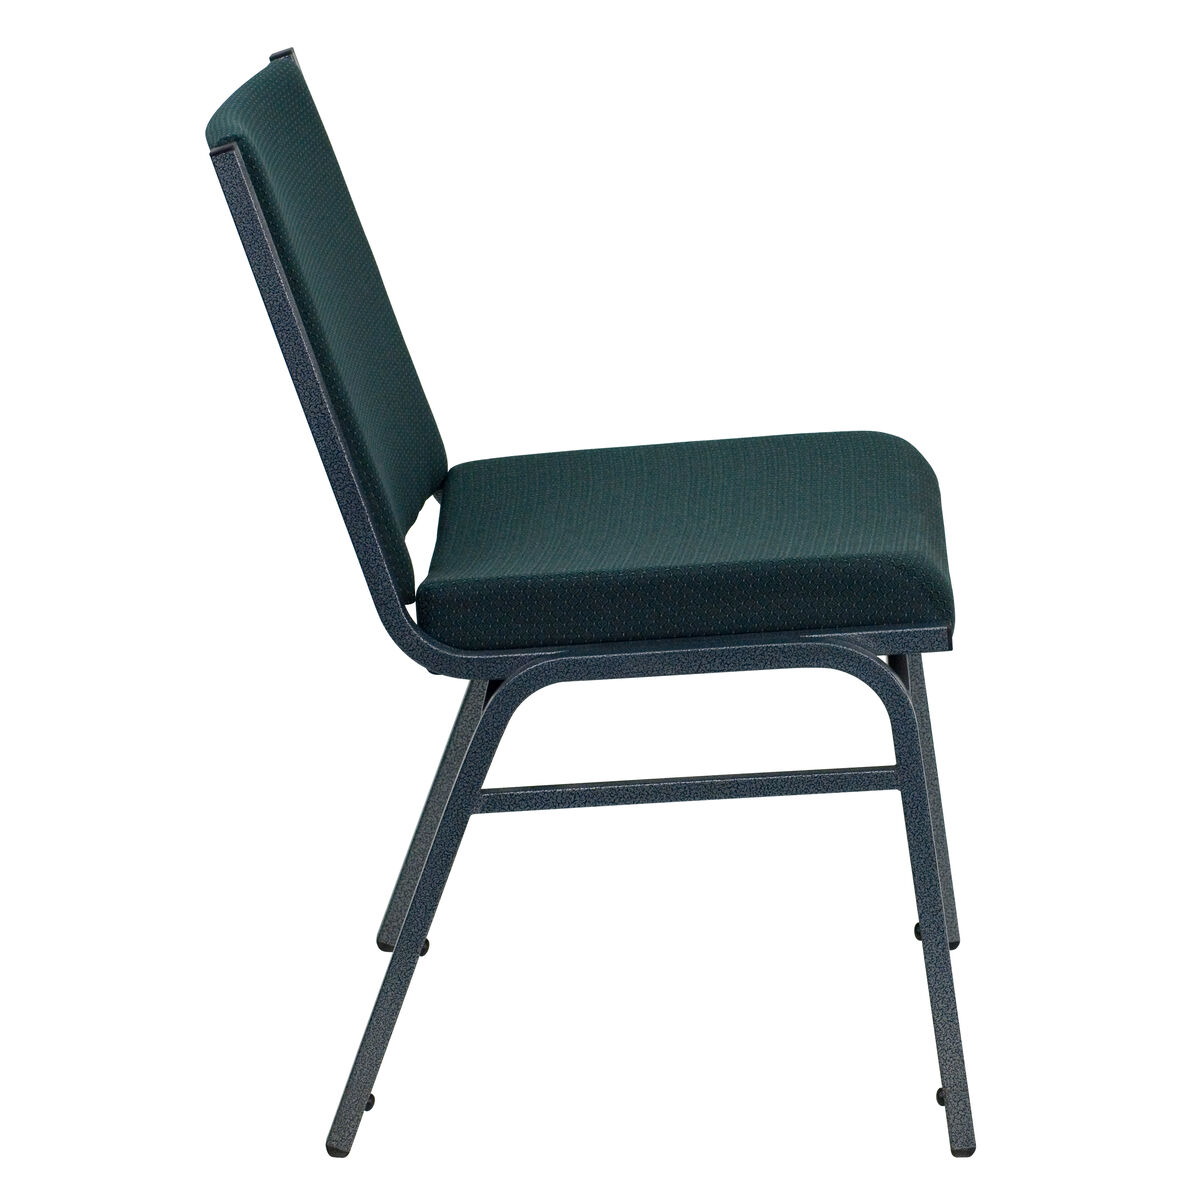 green fabric stack chair xu 60153 gn gg. Black Bedroom Furniture Sets. Home Design Ideas